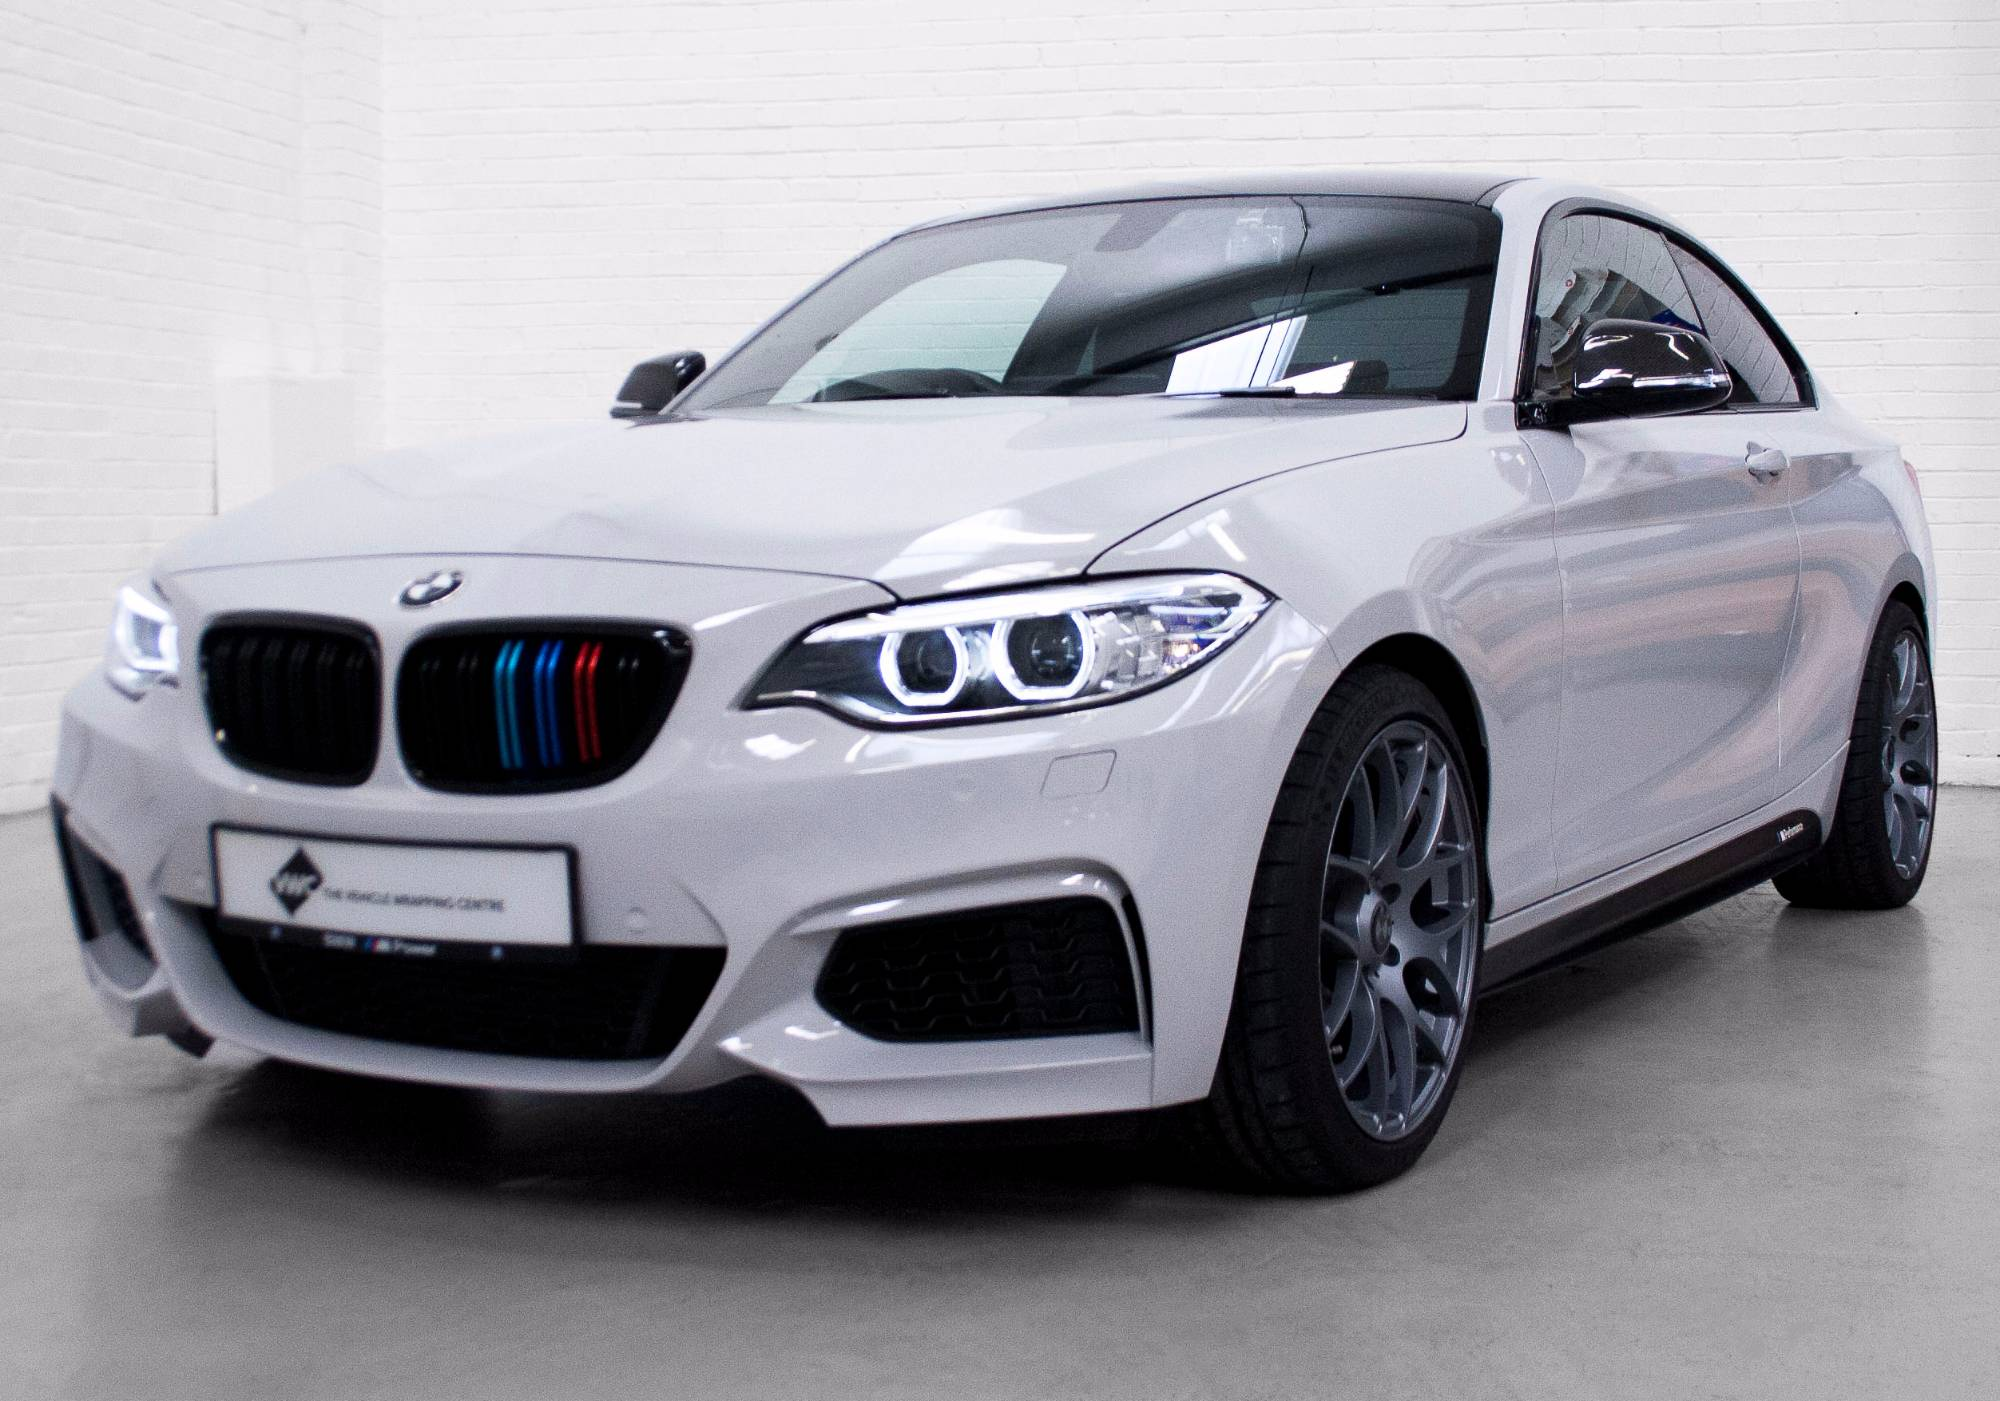 BMW Series M Gloss Storm Grey Personal Vehicle Wrap Project - Bmw 3m series